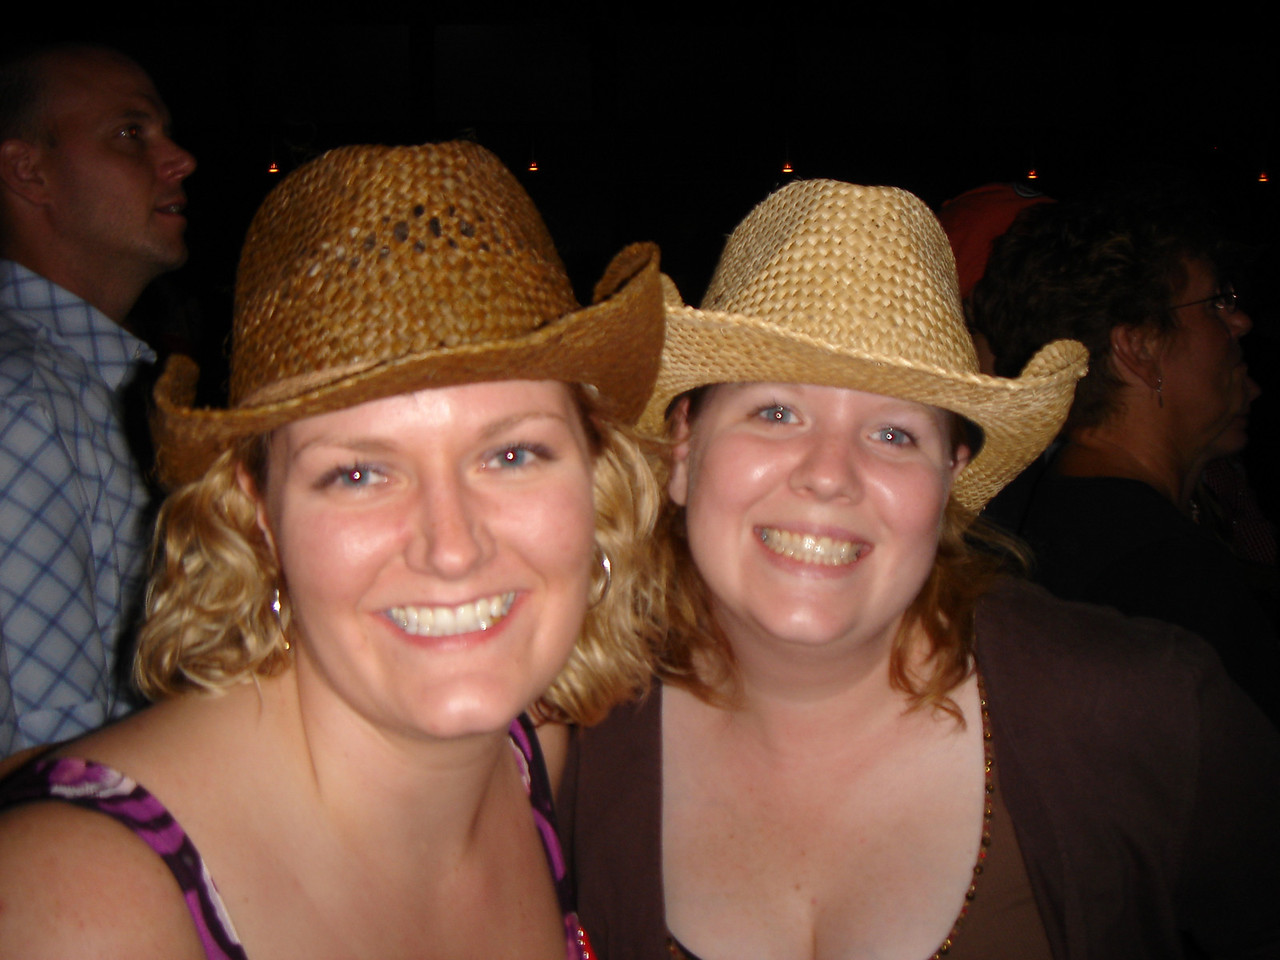 Me and Dena.  Yehaw!